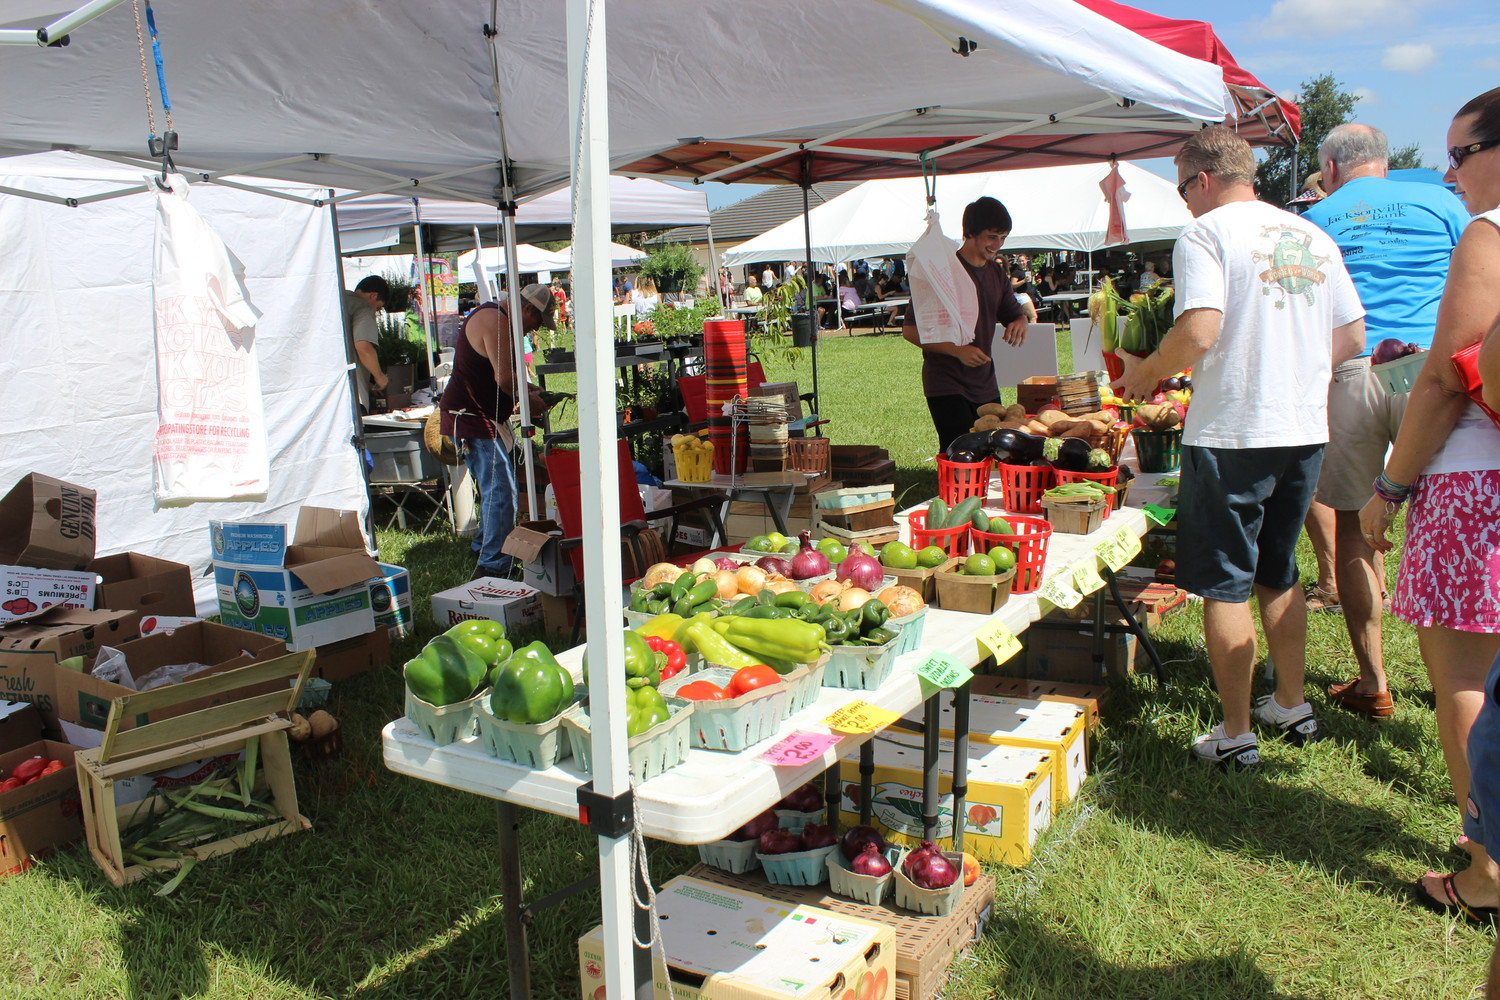 Vendors offer fresh vegetables at the Farmers Market.